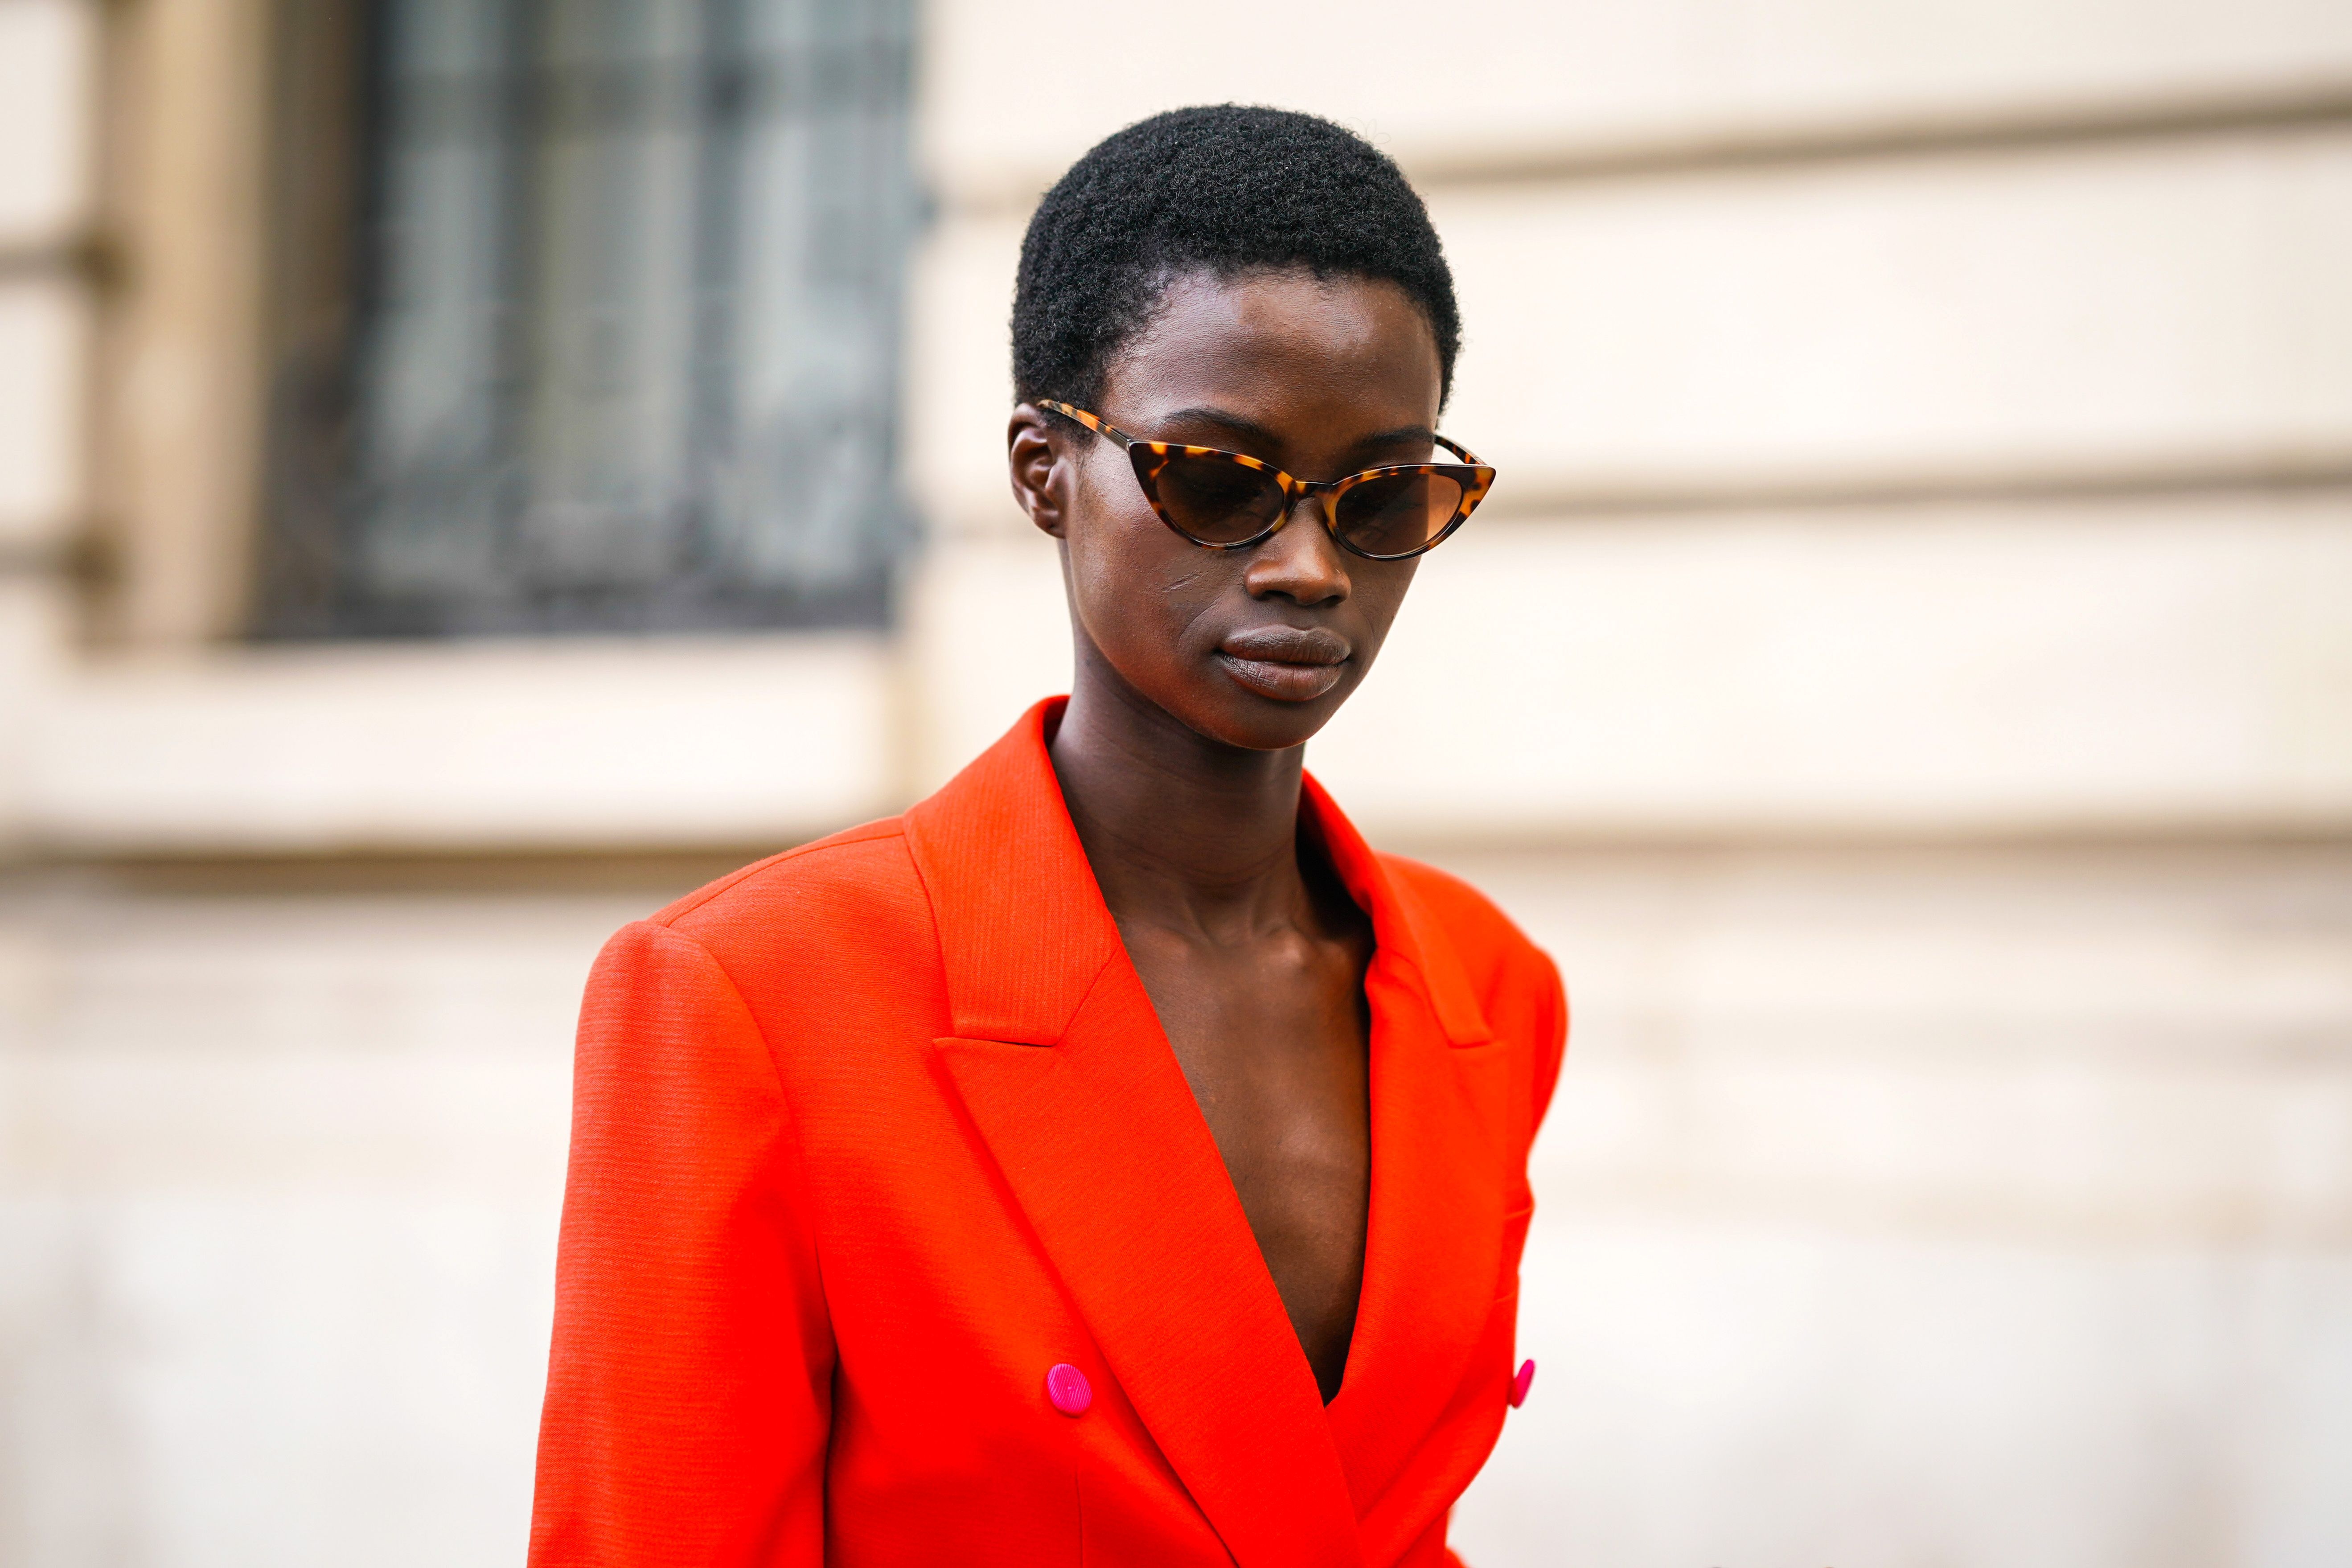 22 Best Sunglasses For Every Summer Aesthetic